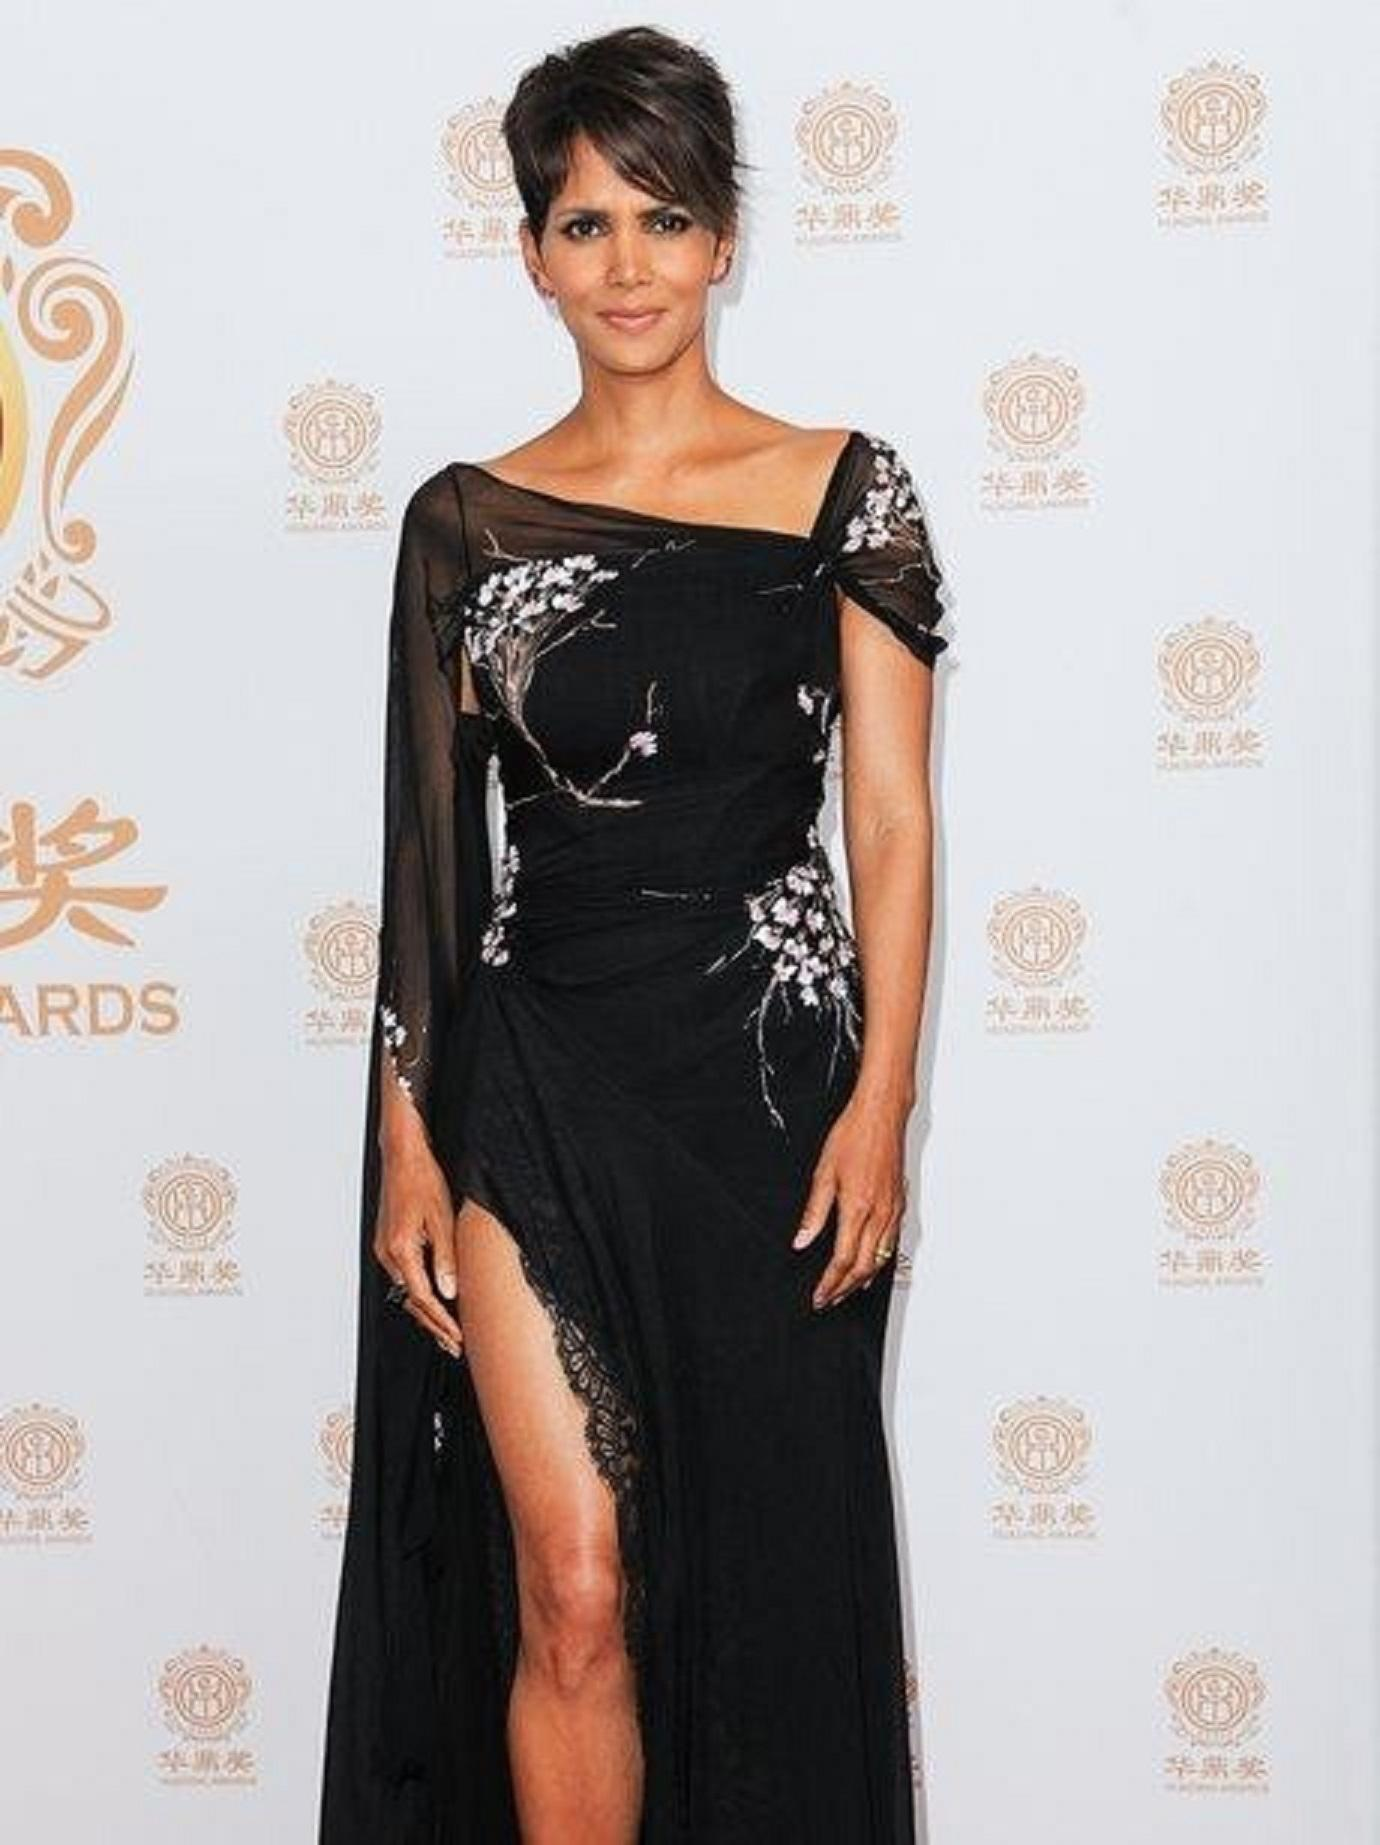 Halle Berry Looks Sultry On The Red Carpet For The Huading